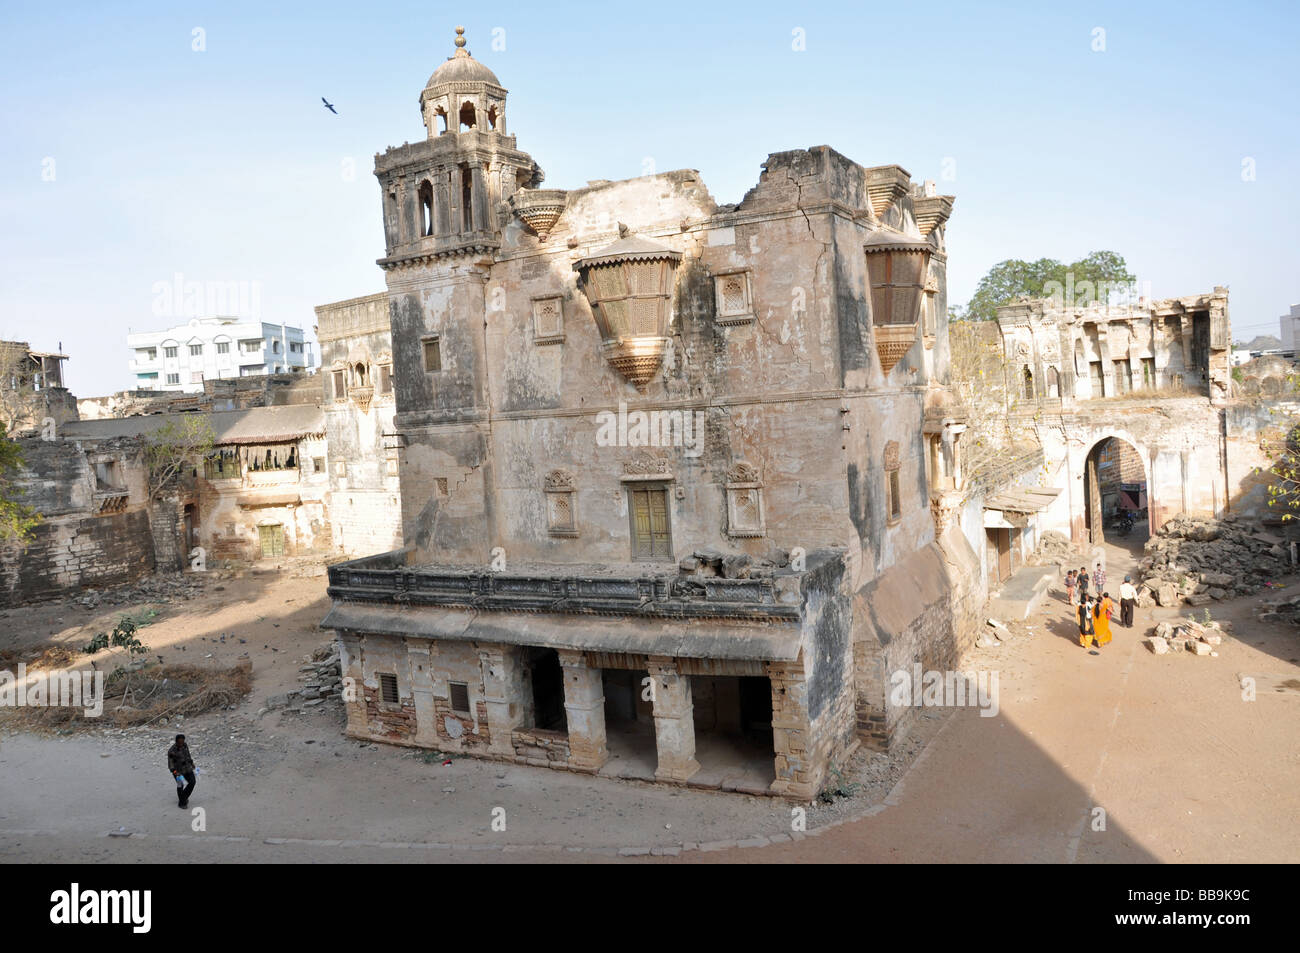 Earthquake Damage in Bhuj. - Stock Image